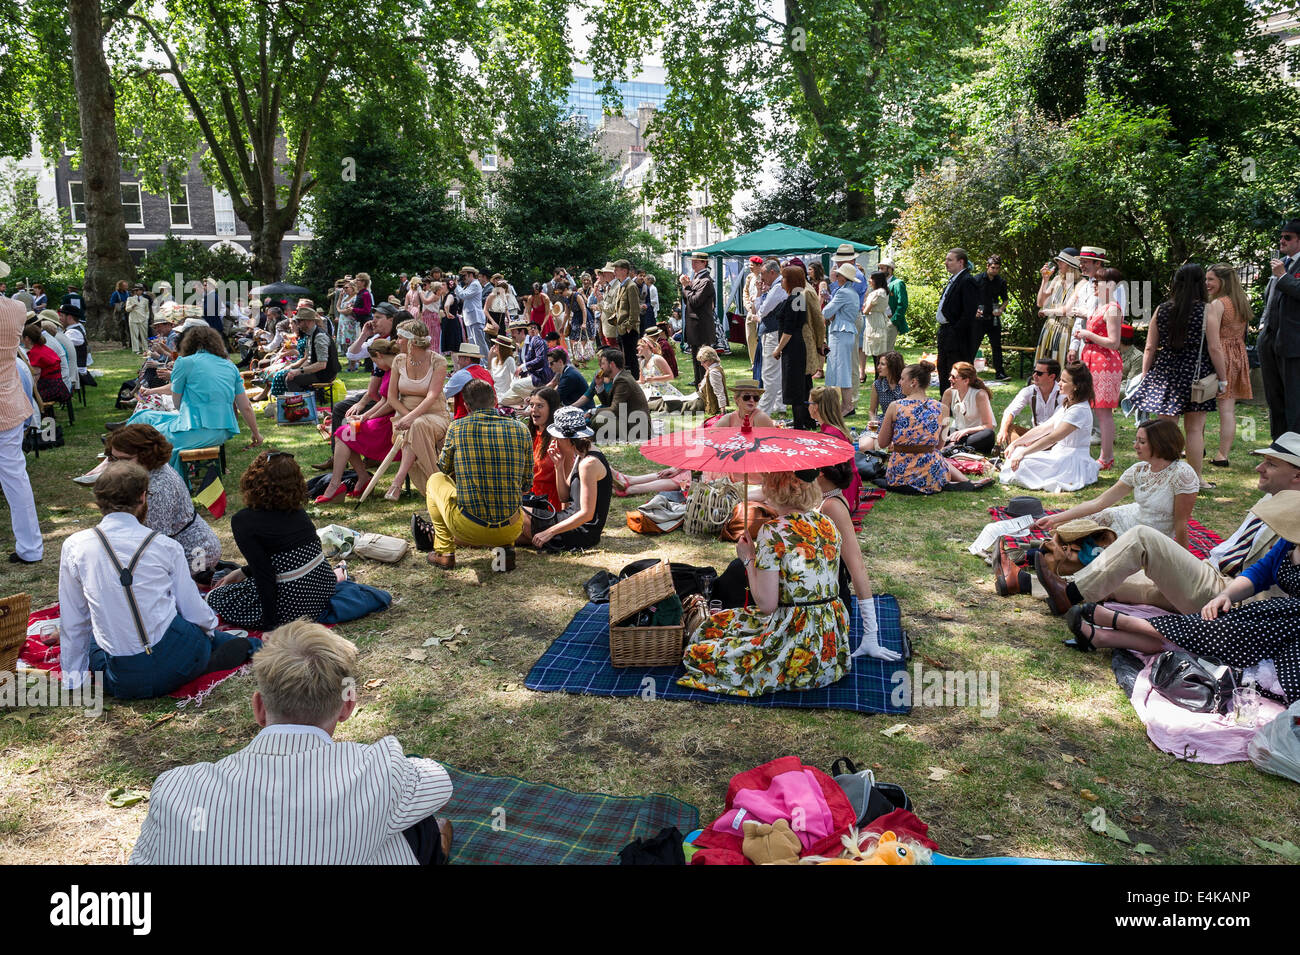 People enjoying the 10th anniversary celebrations of the Chap Olympiad in London, UK. - Stock Image